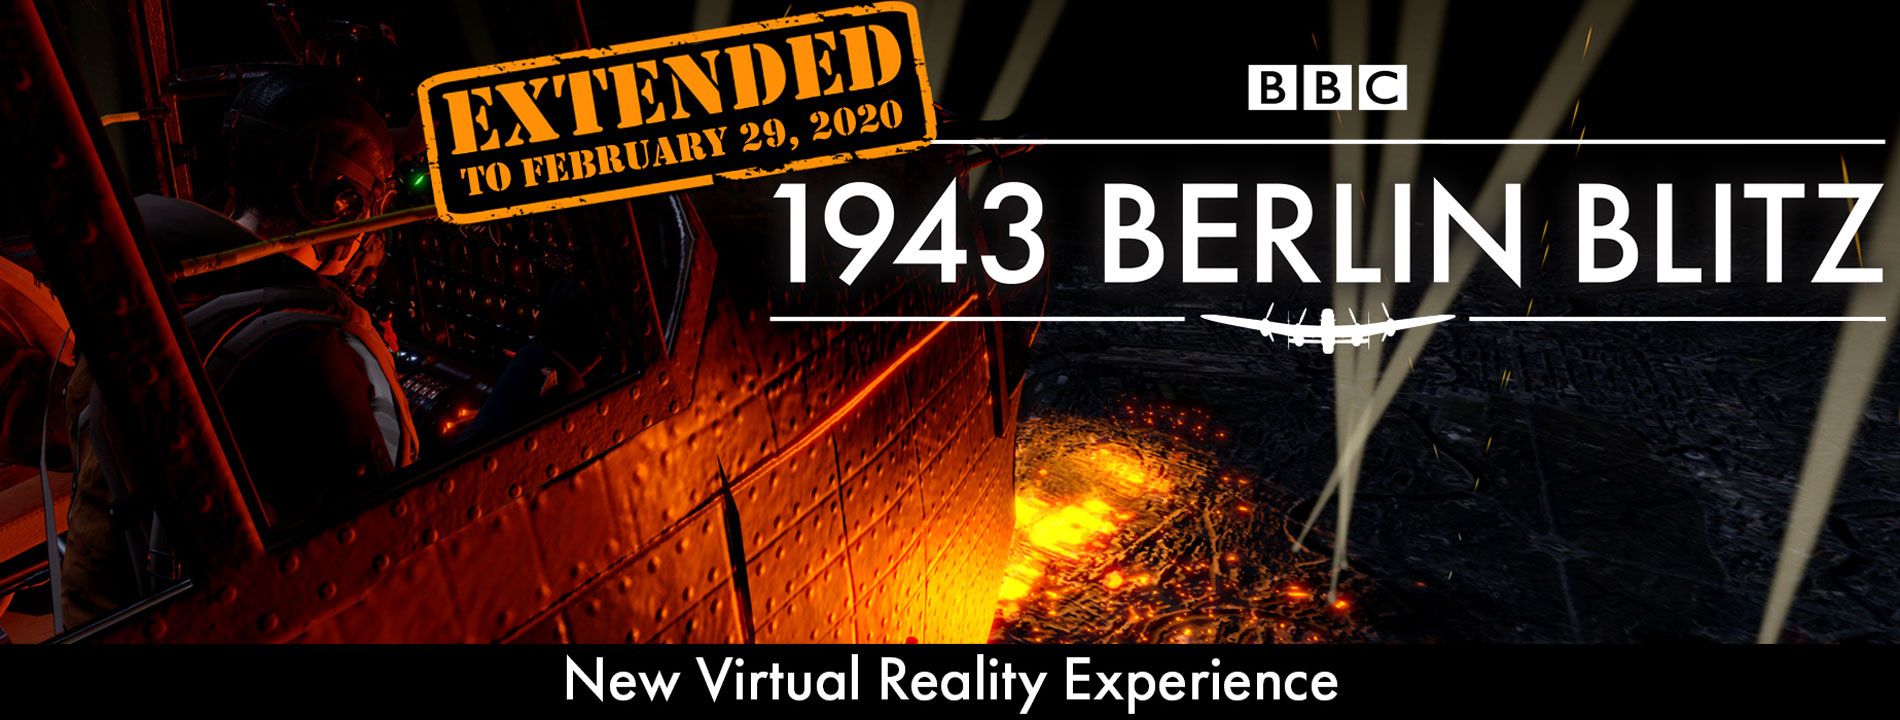 Banner Image for the Virtual Reality Experience - BBC 1943 Berlin Blitz event